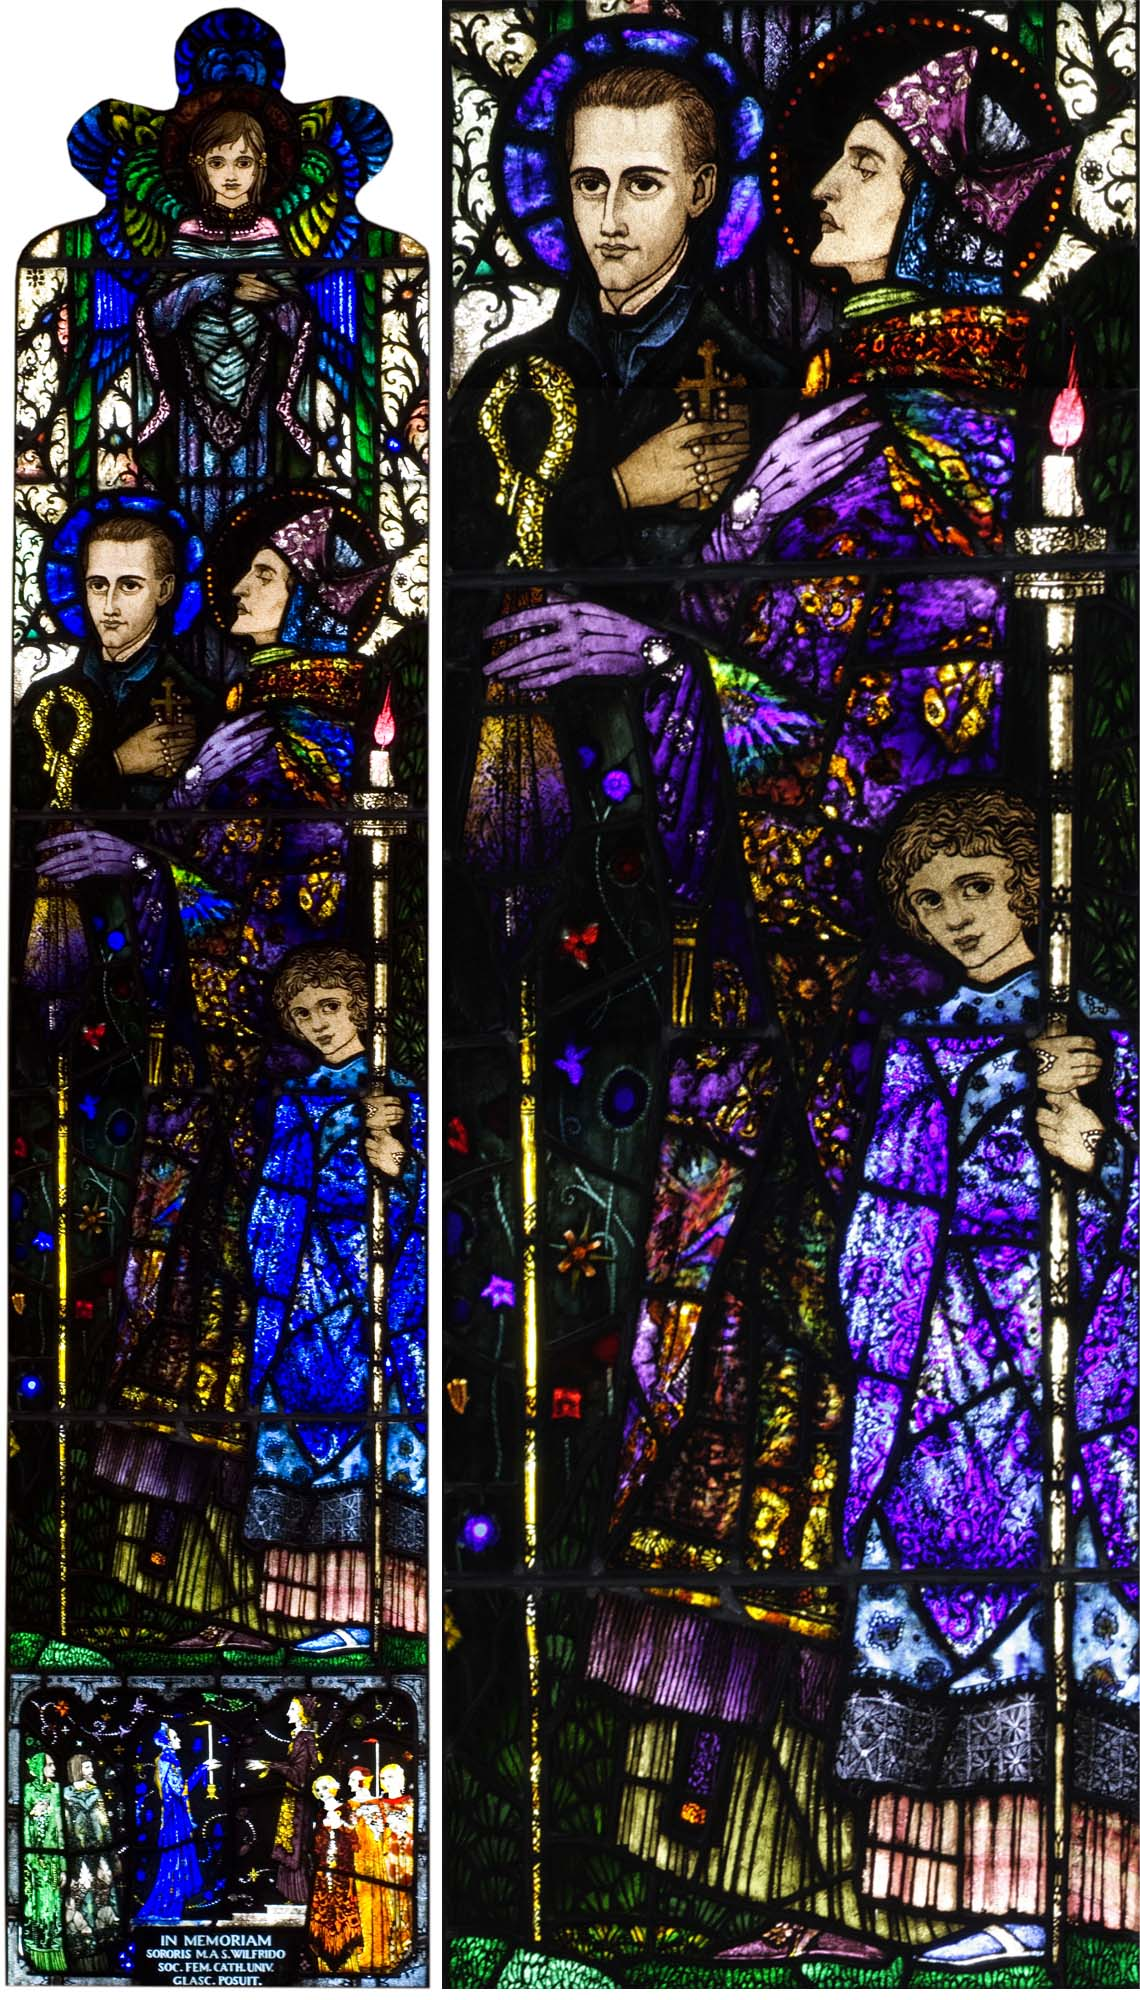 a composite photo shoing two views of a glass window with saints and angels